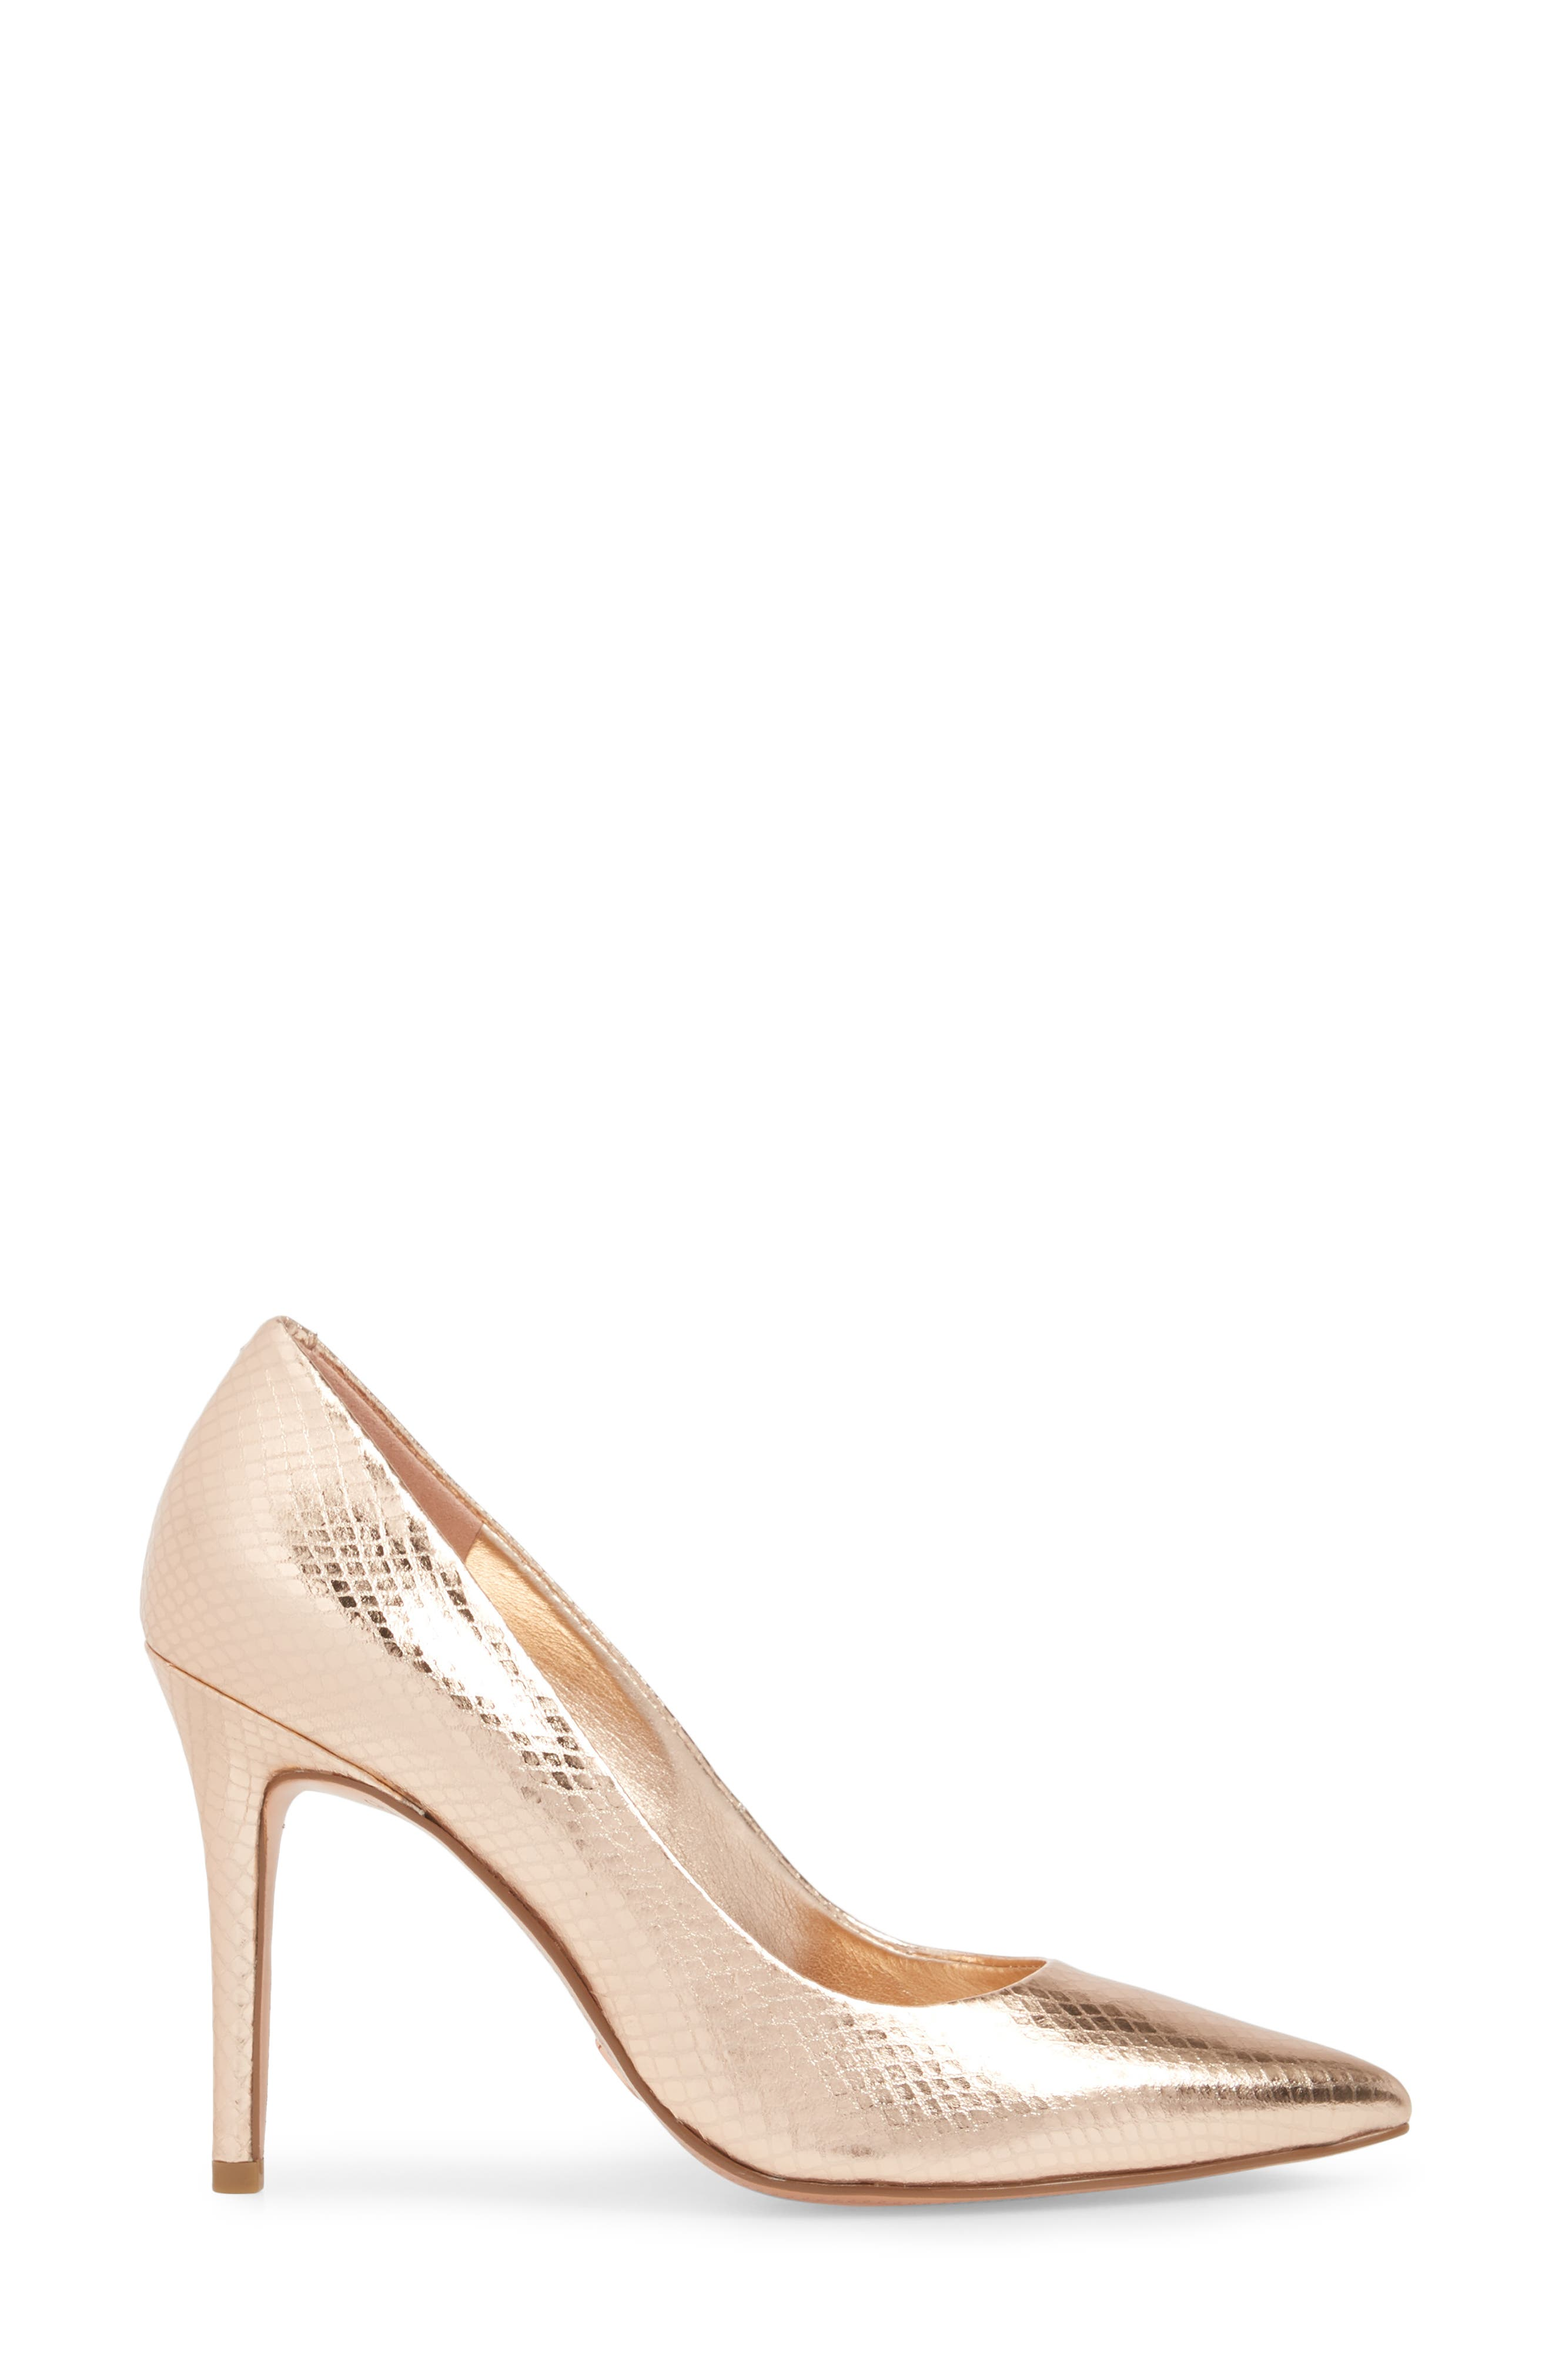 Claire Pointy Toe Pump,                             Alternate thumbnail 5, color,                             Soft Pink Snake Print Fabric